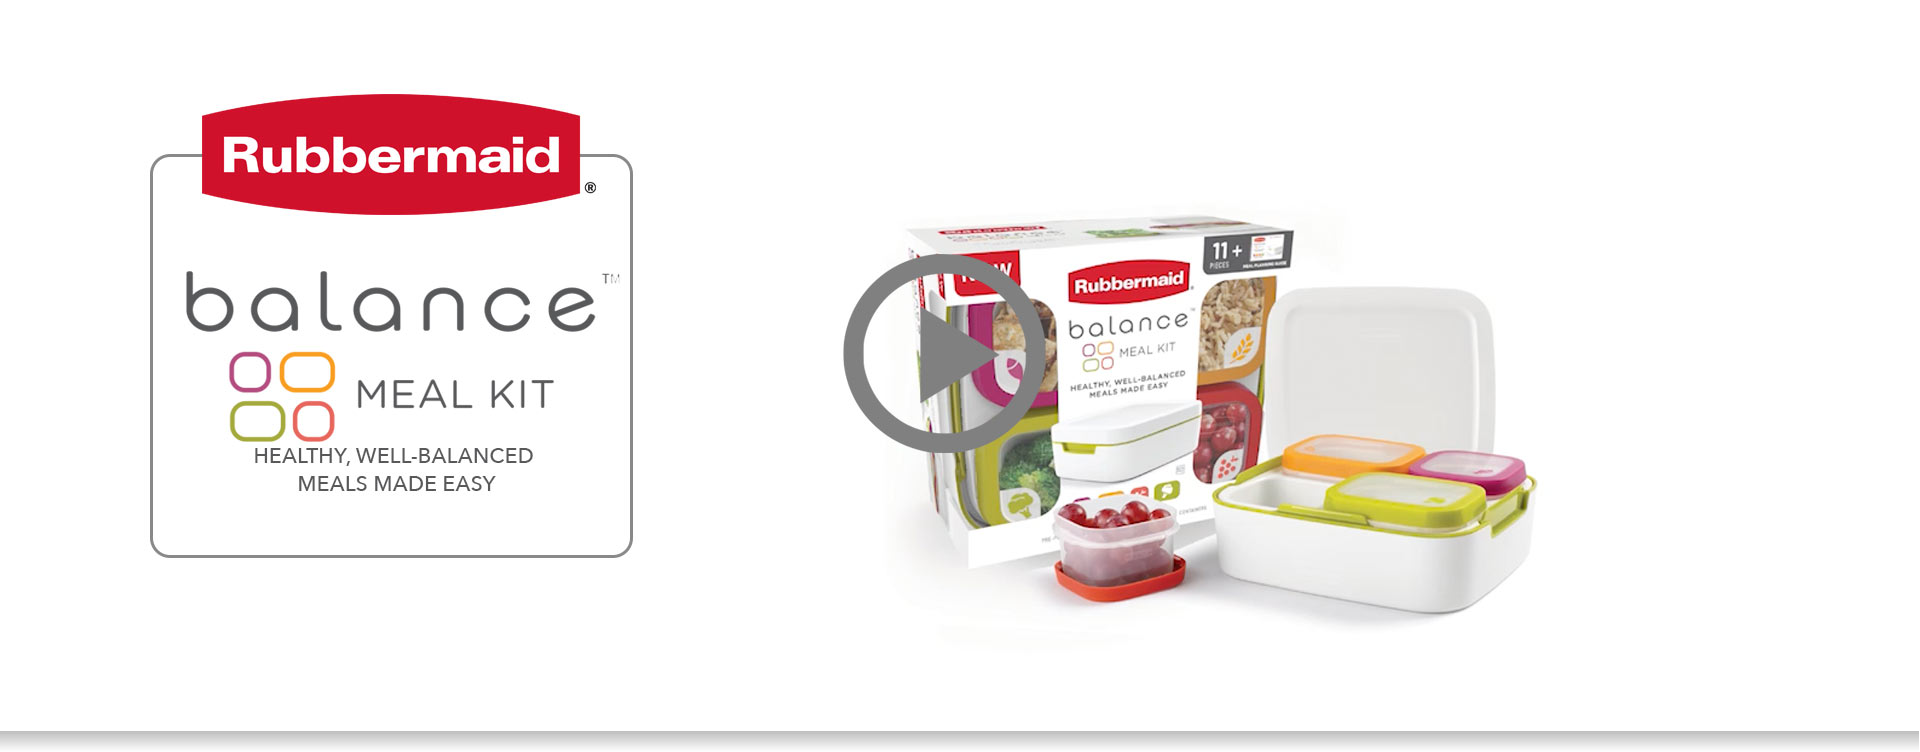 Rubbermaid Balance Meal Kit Bring Your Own Lunch Set Tupperware